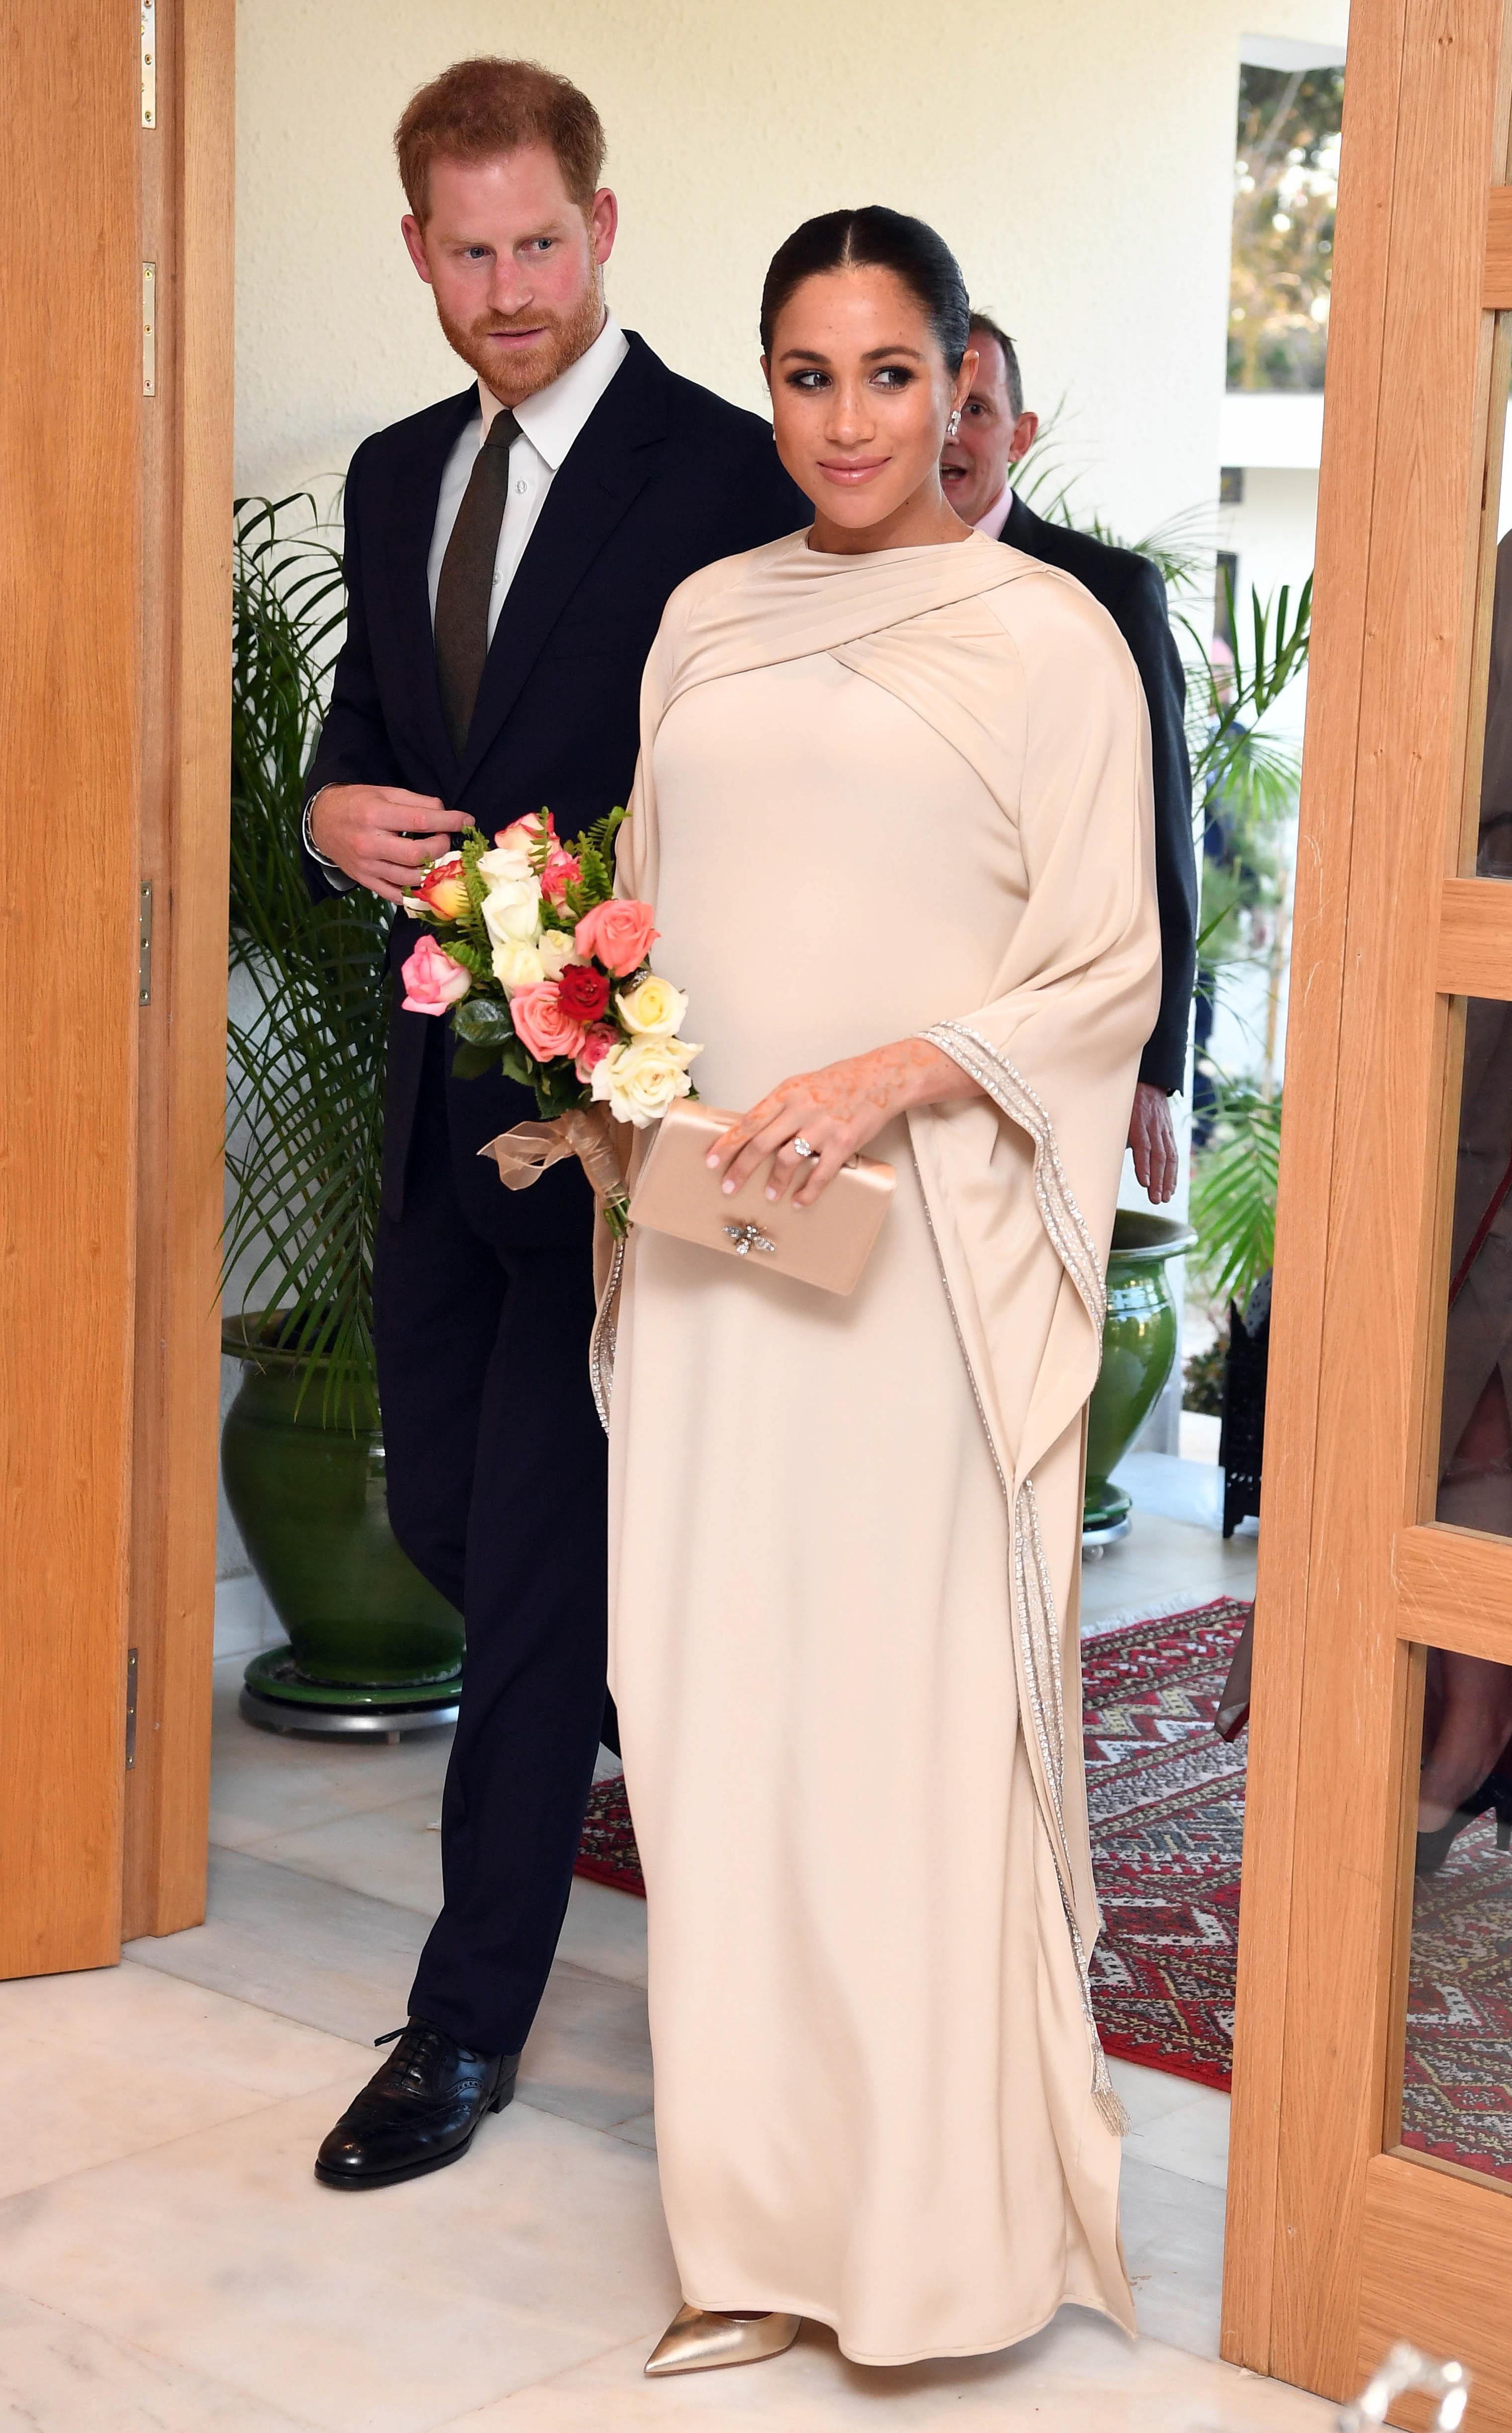 Meghan Markle Haute Couture A Look At Her Christian Dior Dress,Dress As Wedding Guest